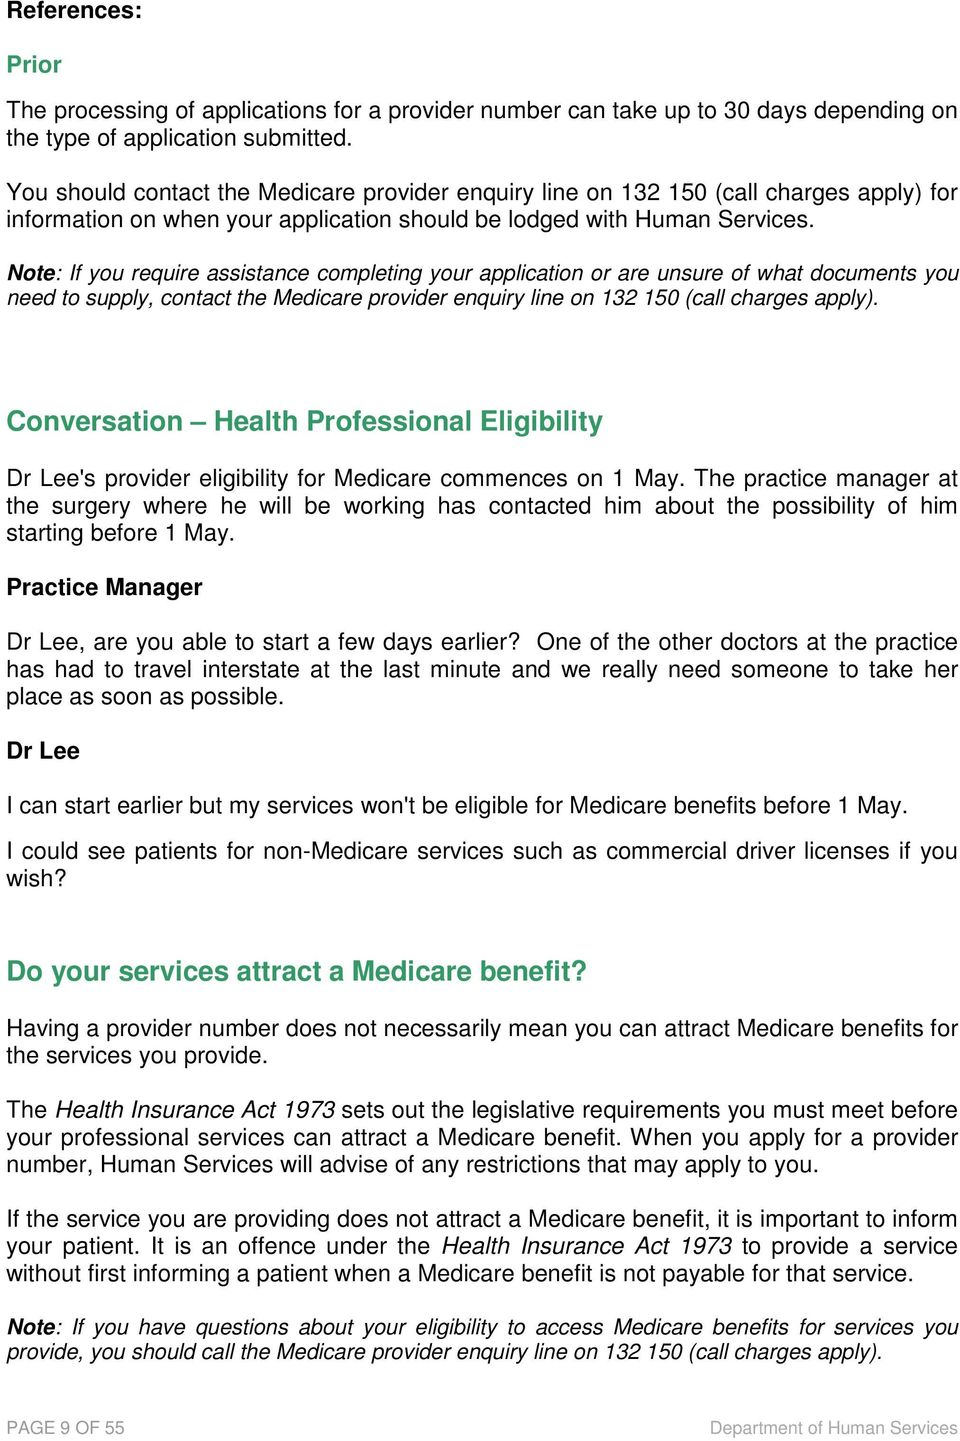 Note: If you require assistance completing your application or are unsure of what documents you need to supply, contact the Medicare provider enquiry line on 132 150 (call charges apply).